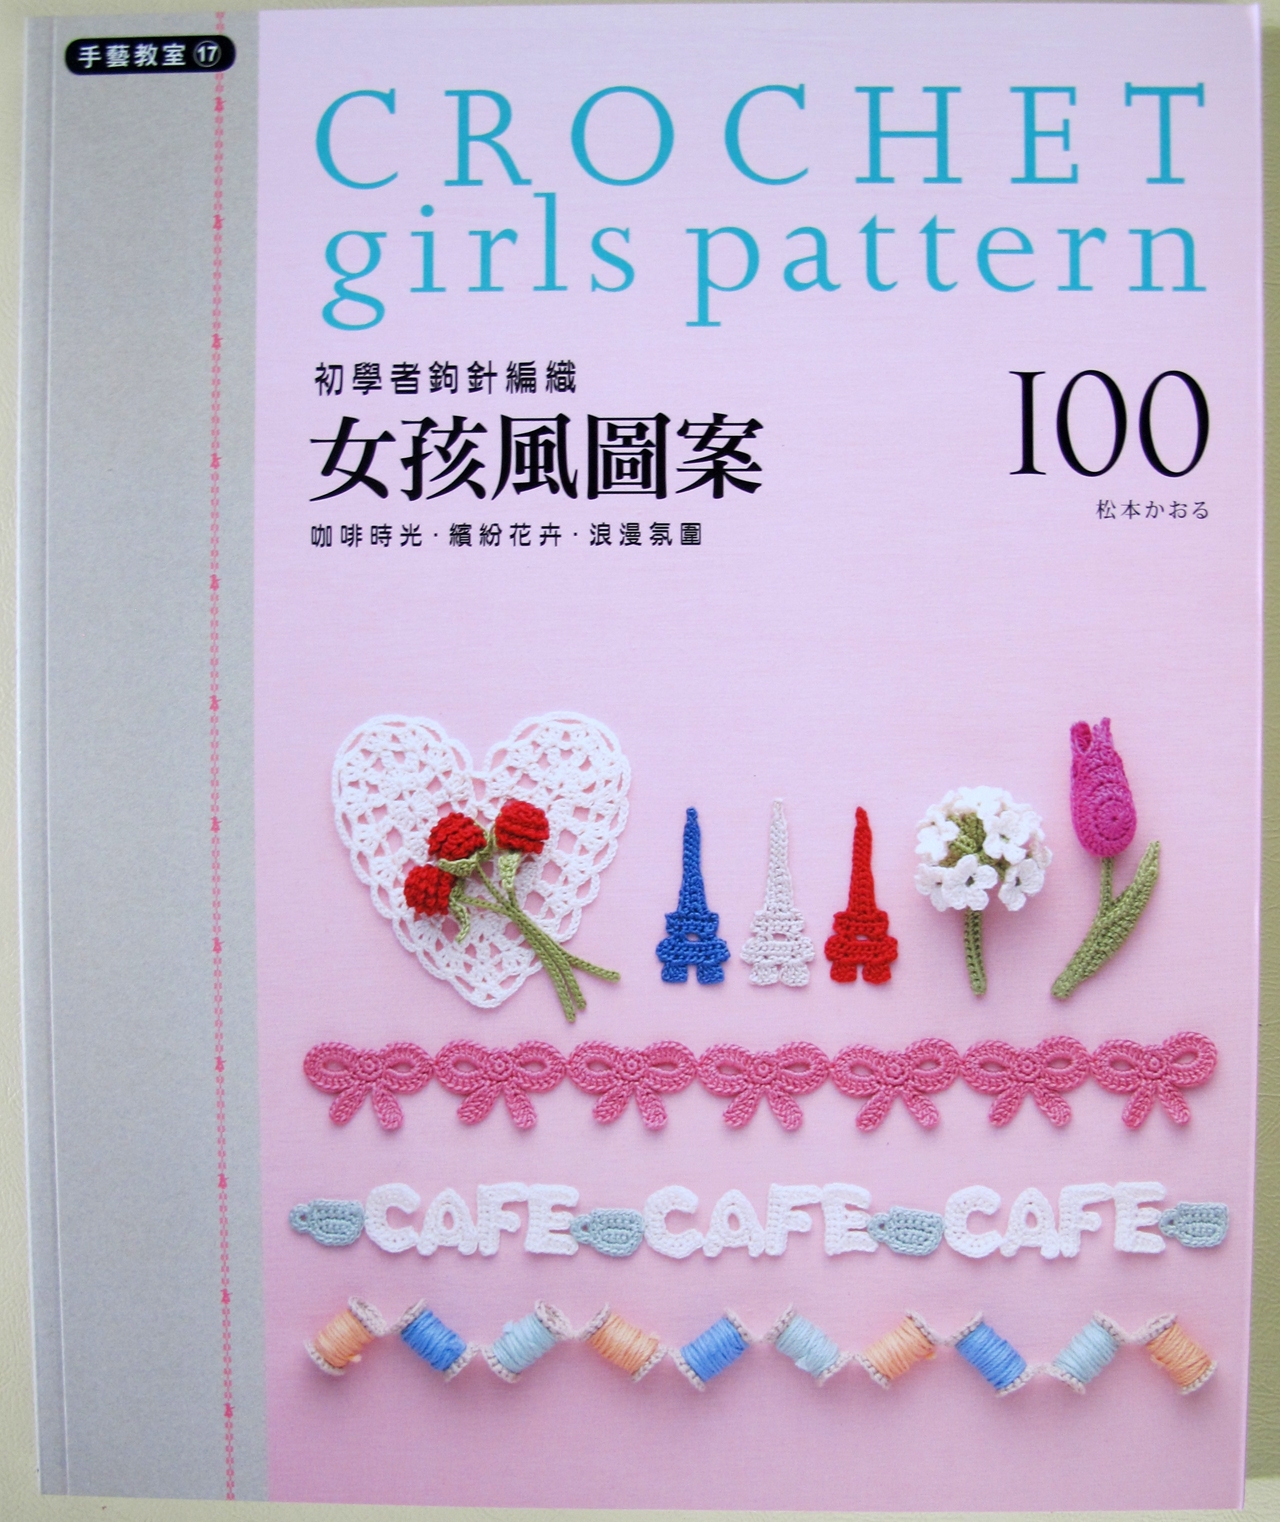 ... Crochet Book - Crochet Girls Patterns Japanese Crochet Book - Crochet